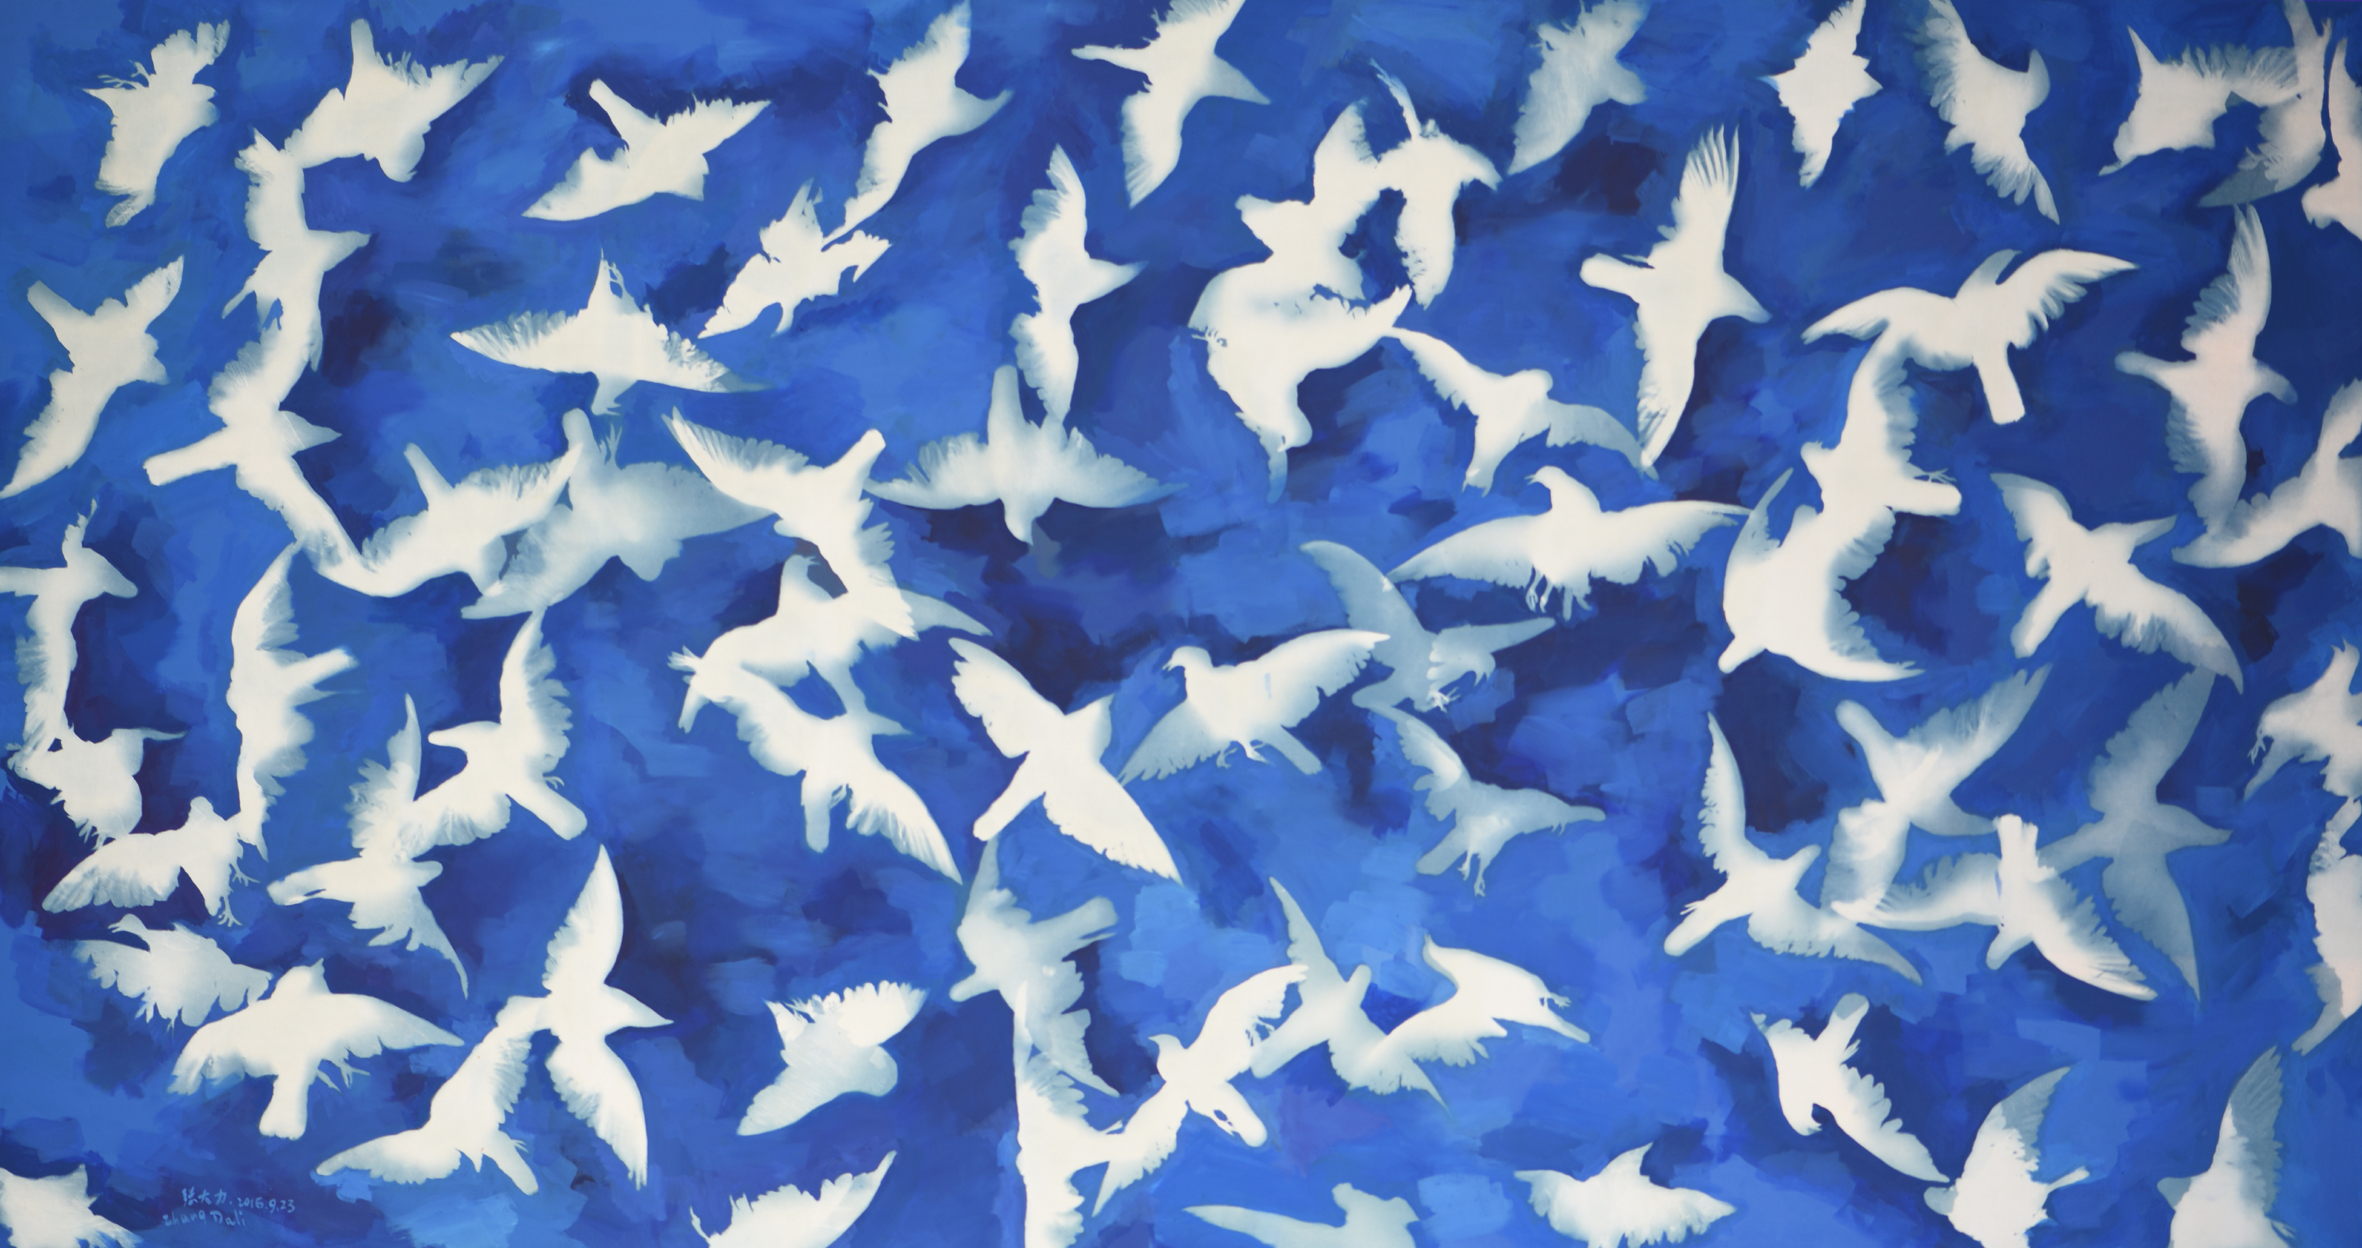 Blue Blue Sky, Cyanotype and Oil on Canvas, 220 x 410 cm, 2016   Photo Copyright Artist Zhang Dali and Courtesy of Pékin Fine Arts